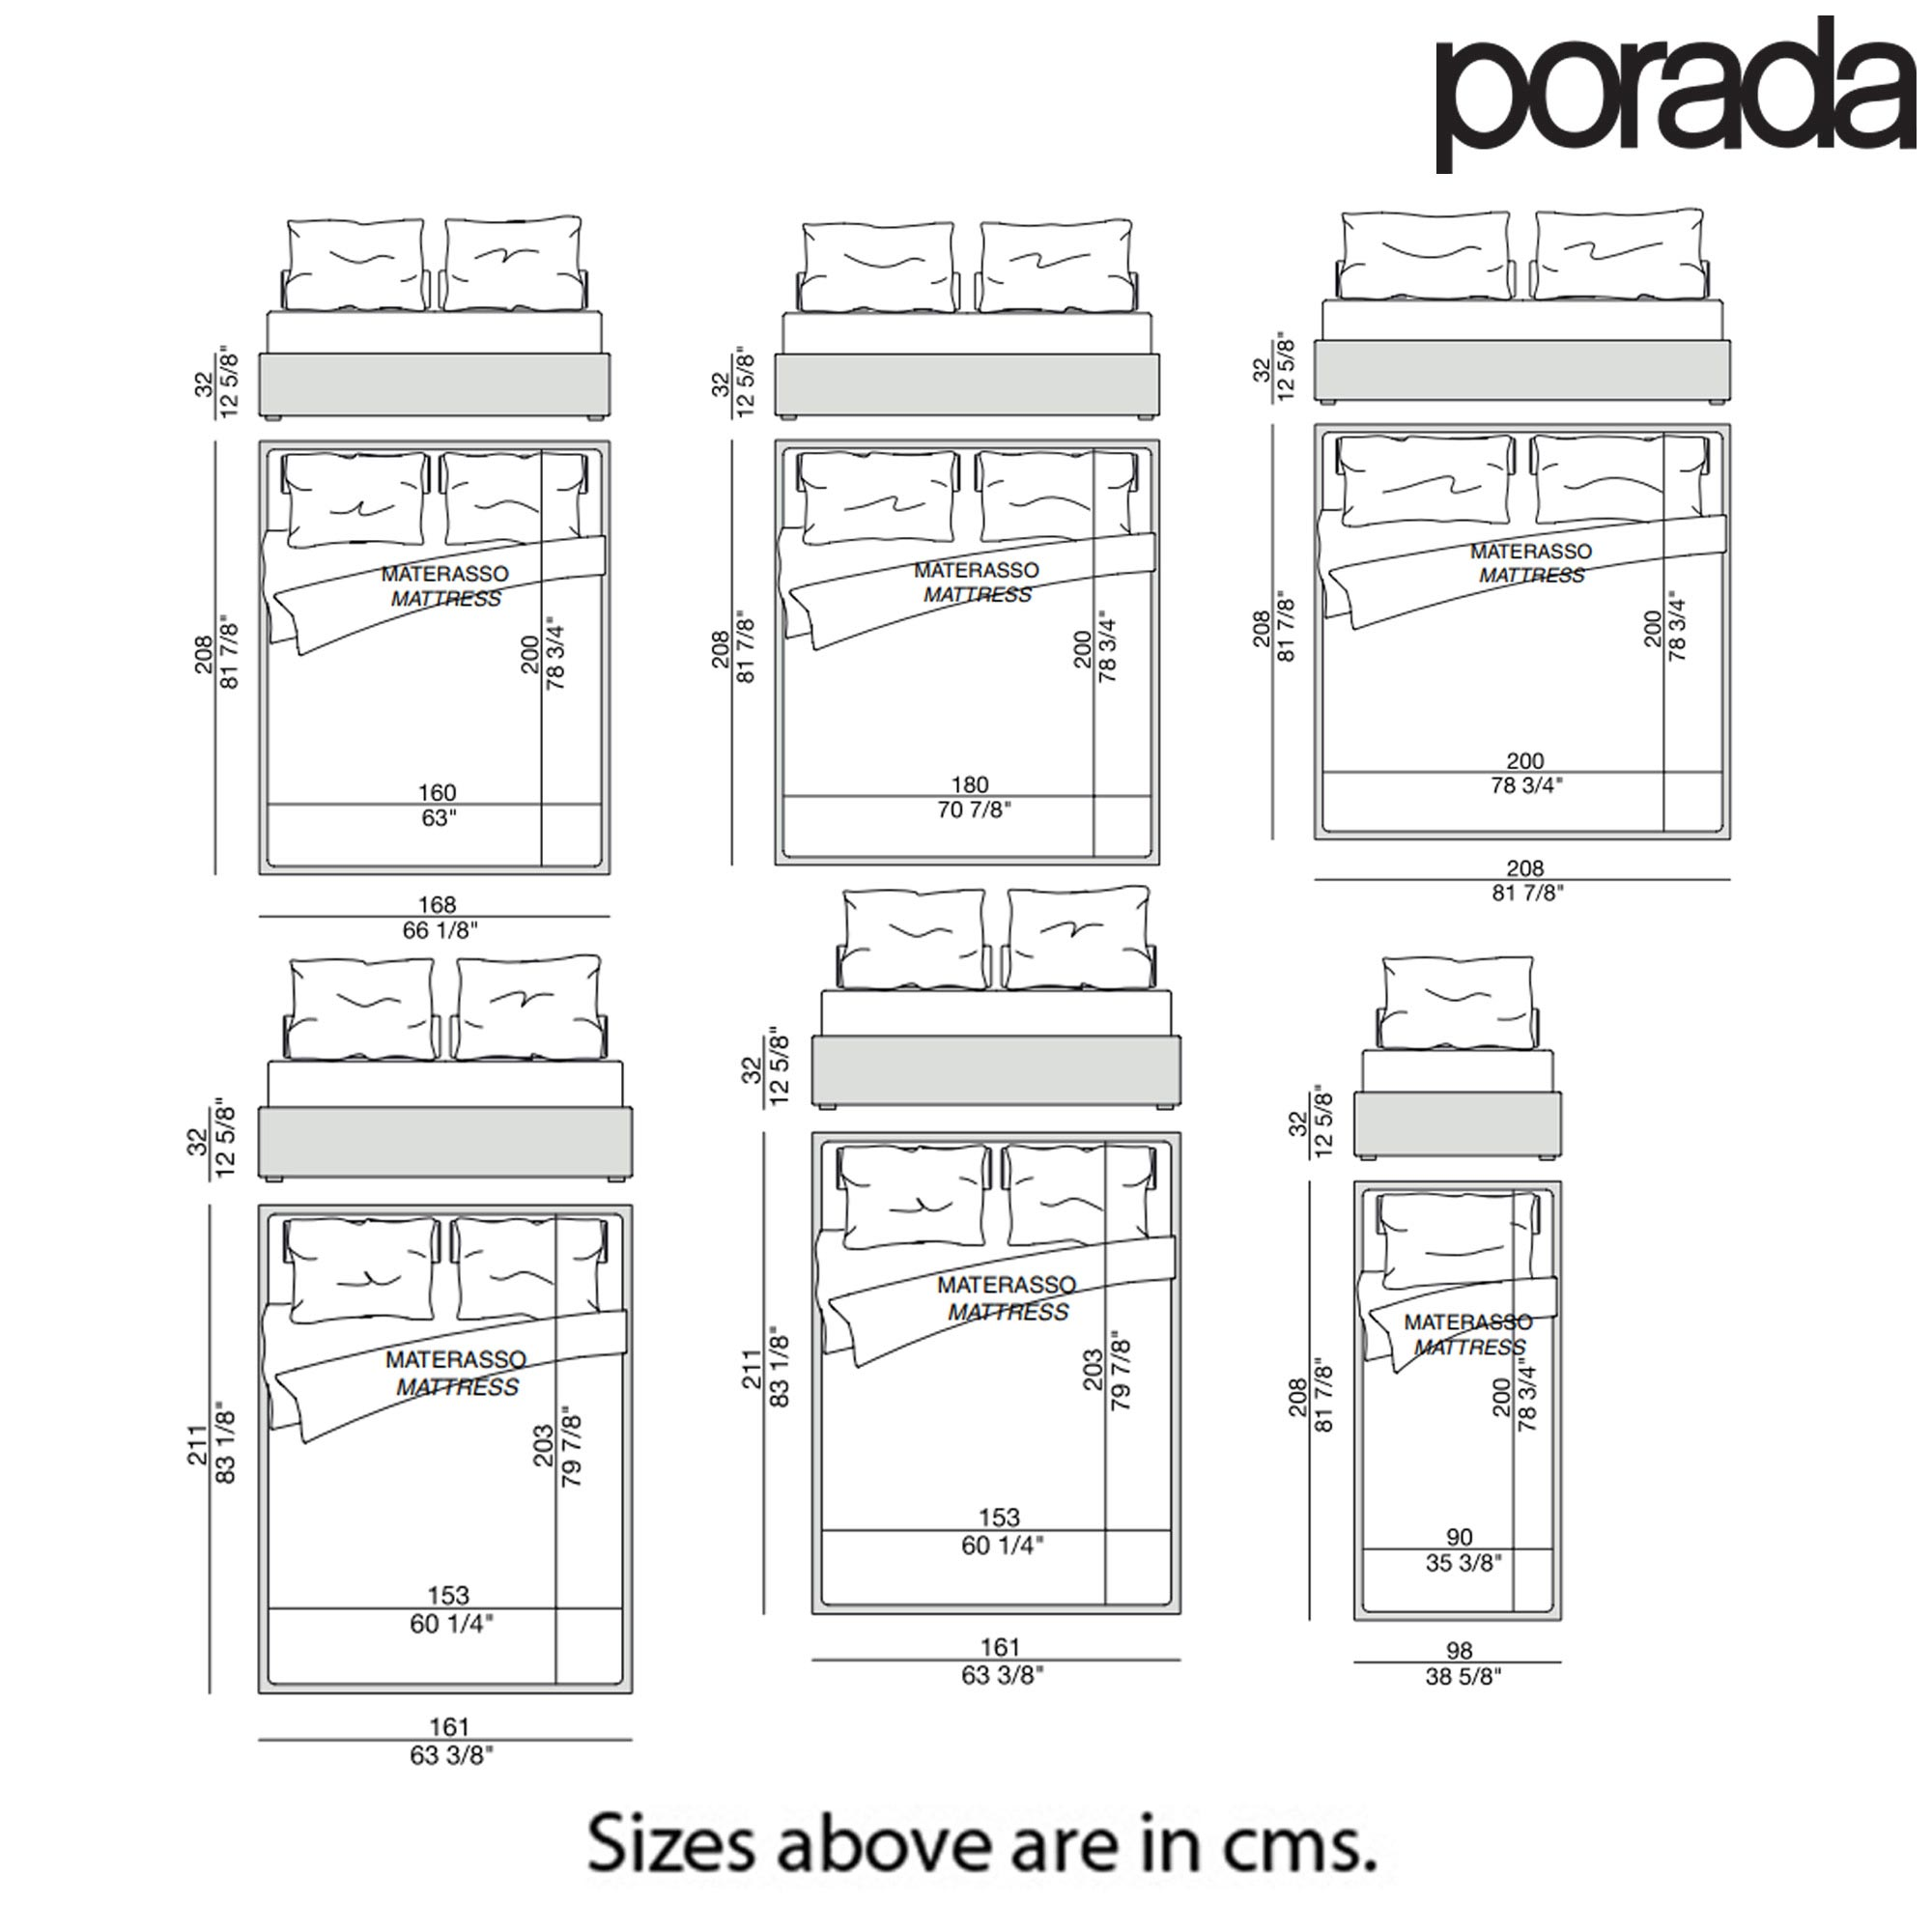 Apollo Double Bed by Porada